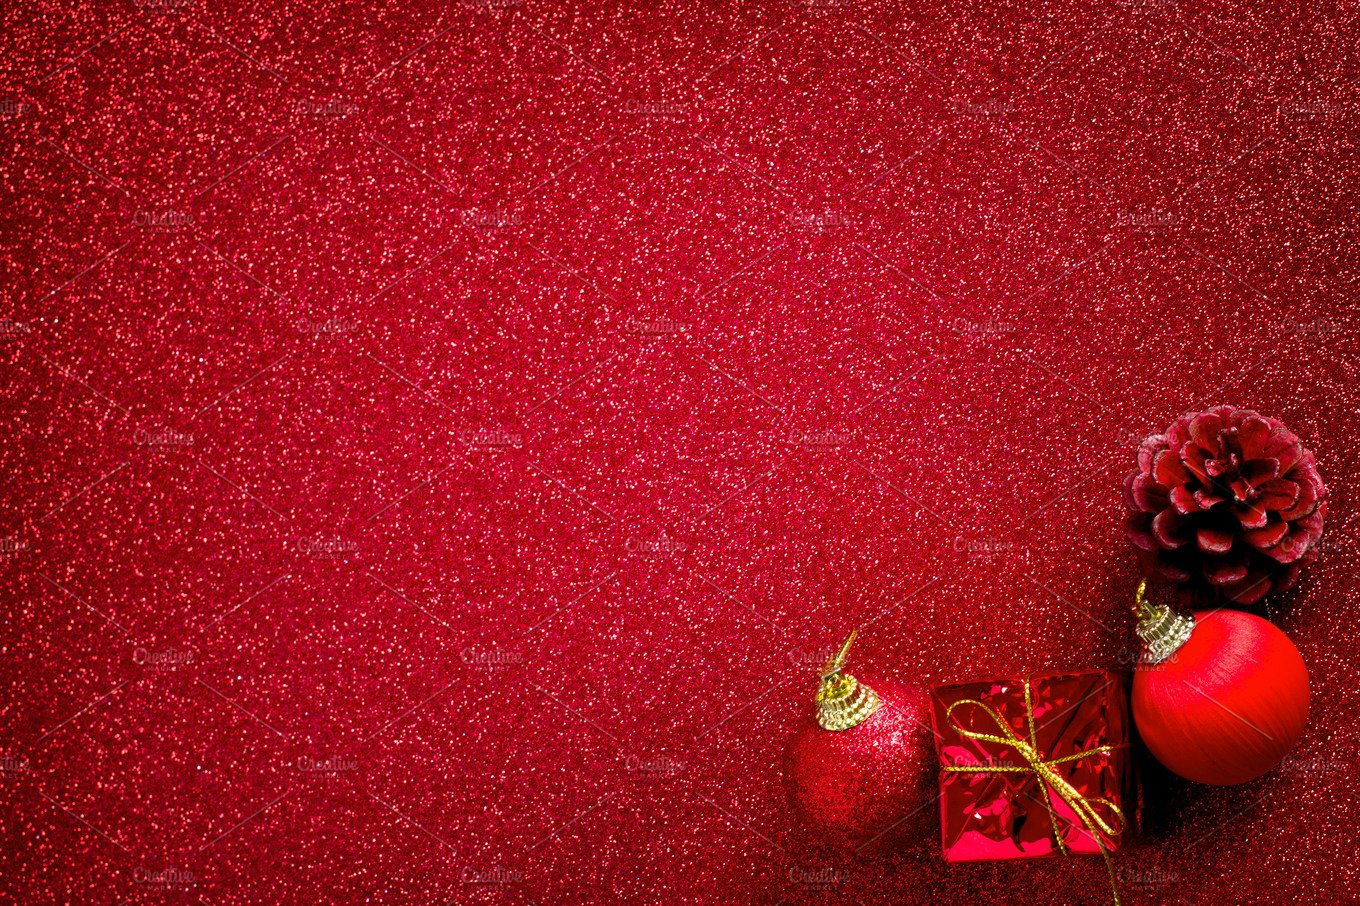 red christmas background holiday photos creative market - Red Christmas Background